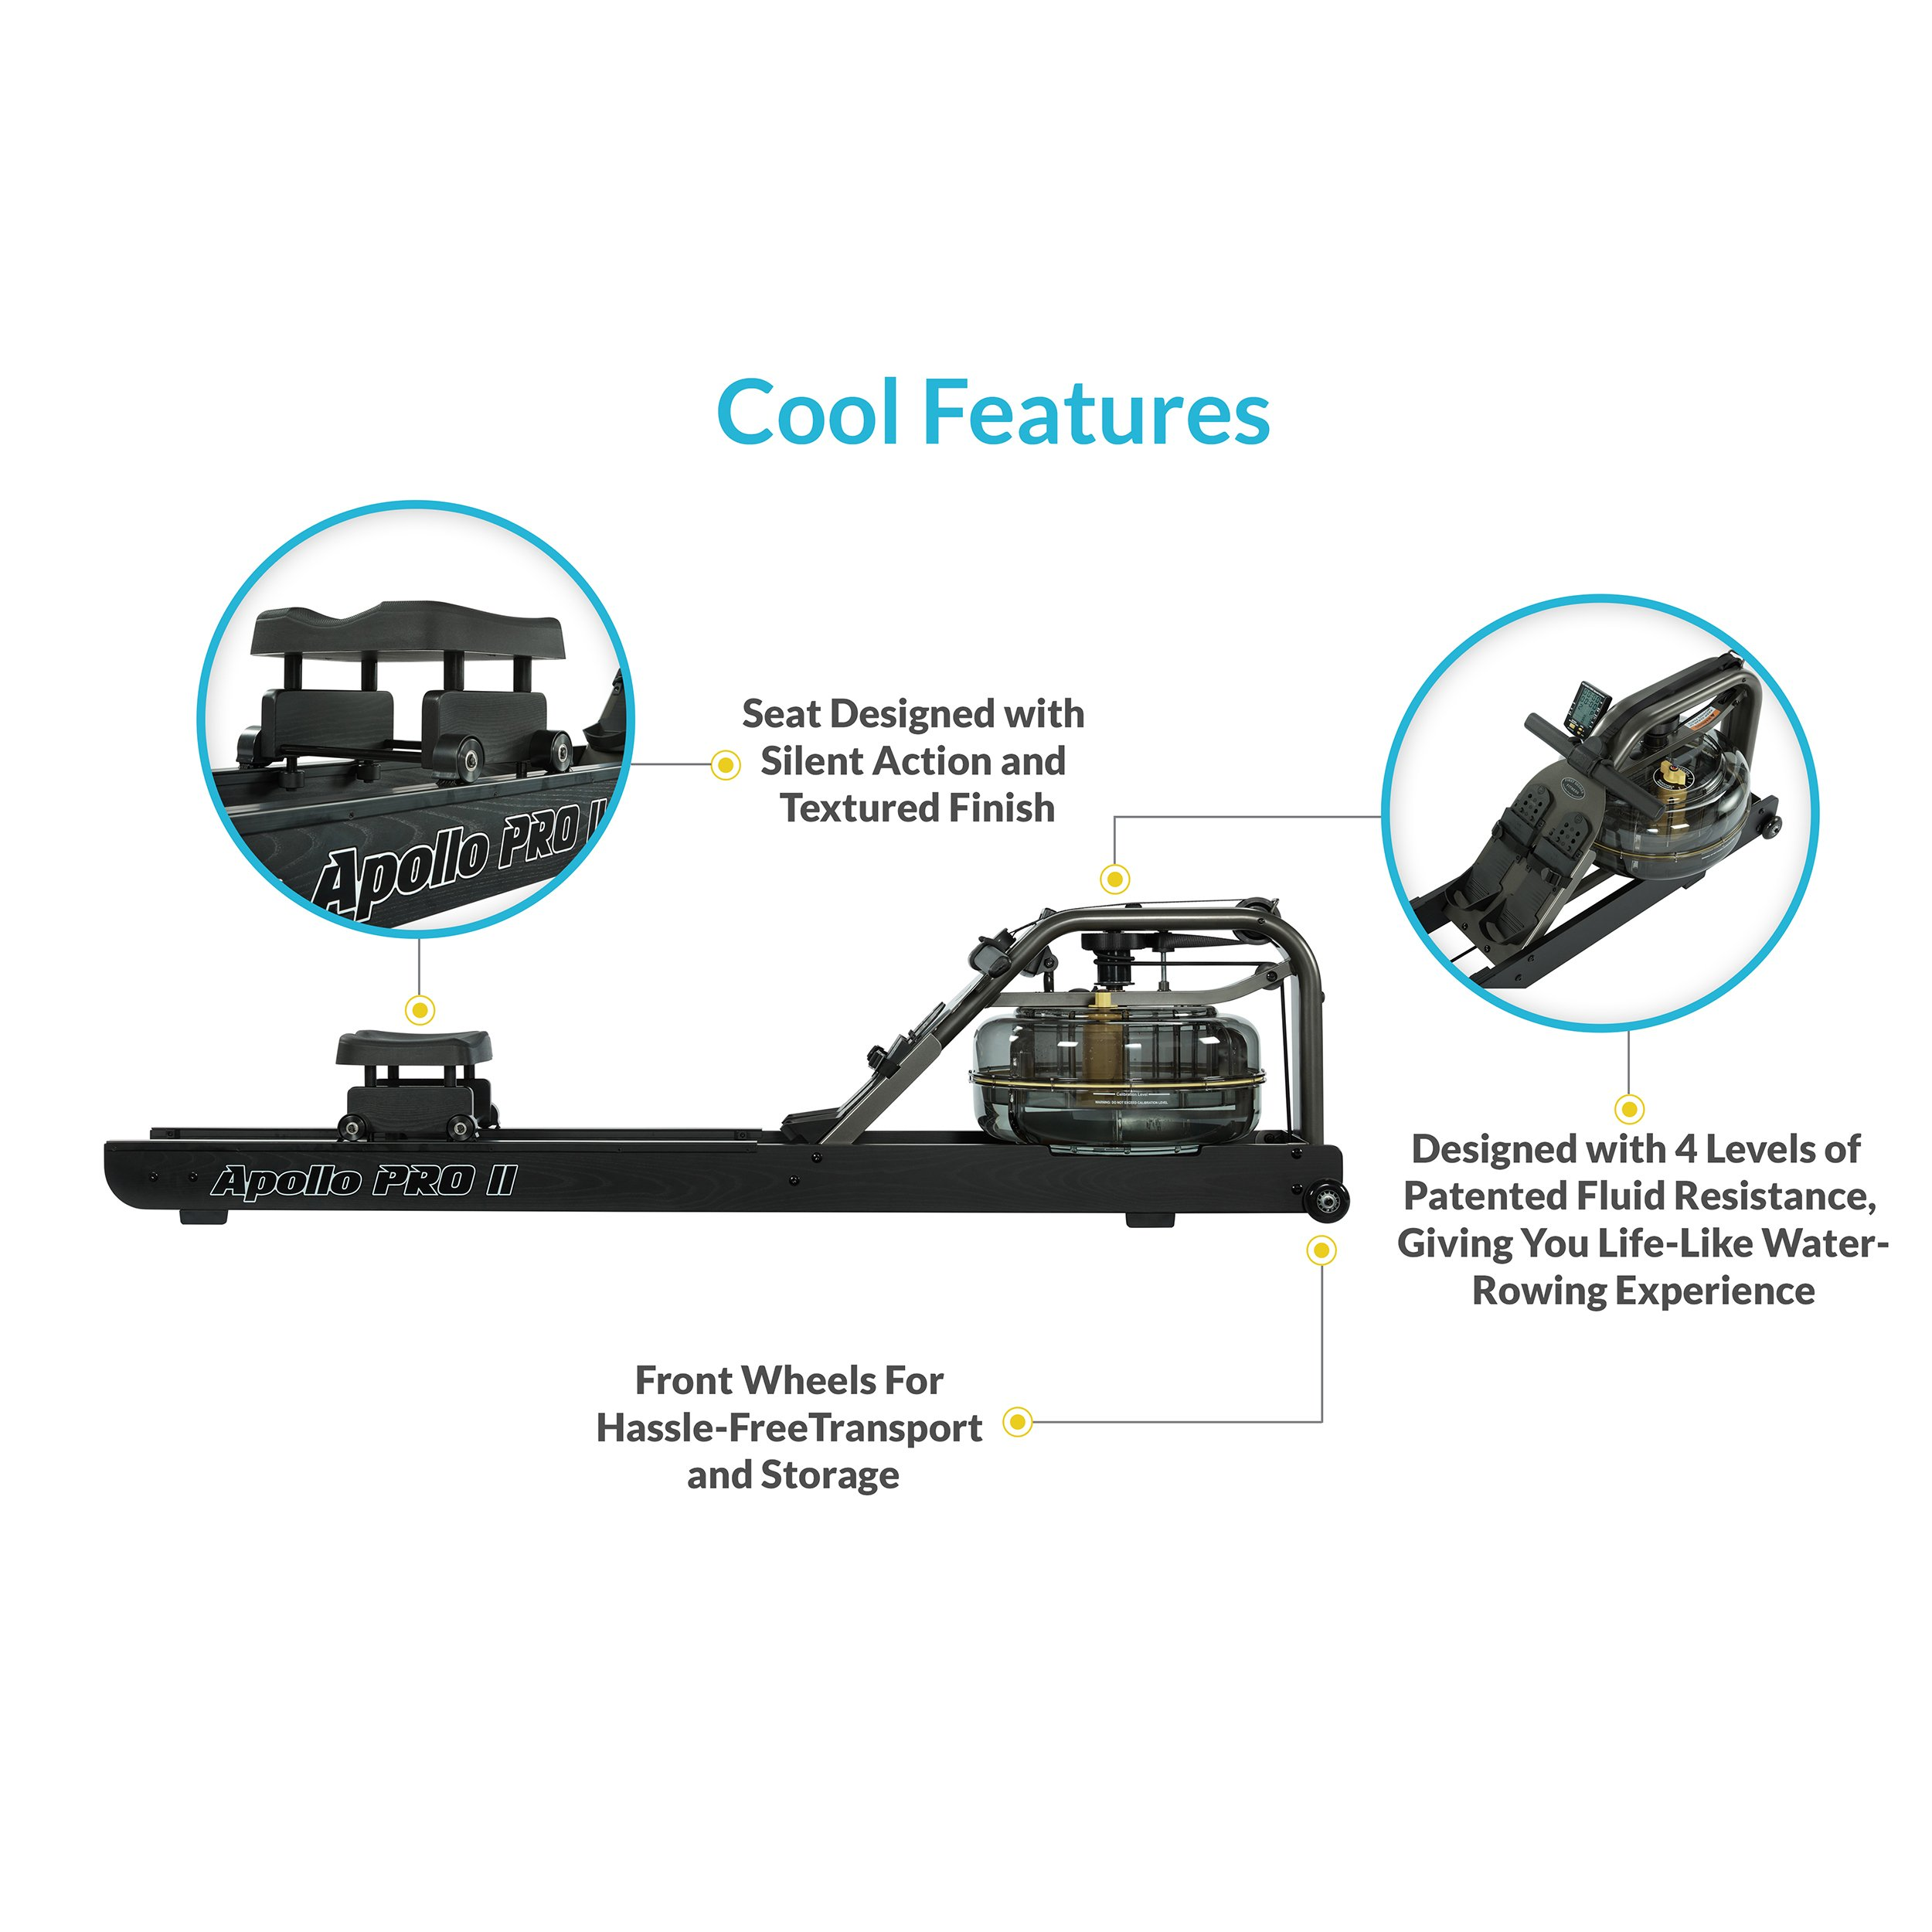 First Degree Fitness Indoor Water Rower with Adjustable Resistance - Apollo Pro II Black Reserve by First Degree (Image #2)